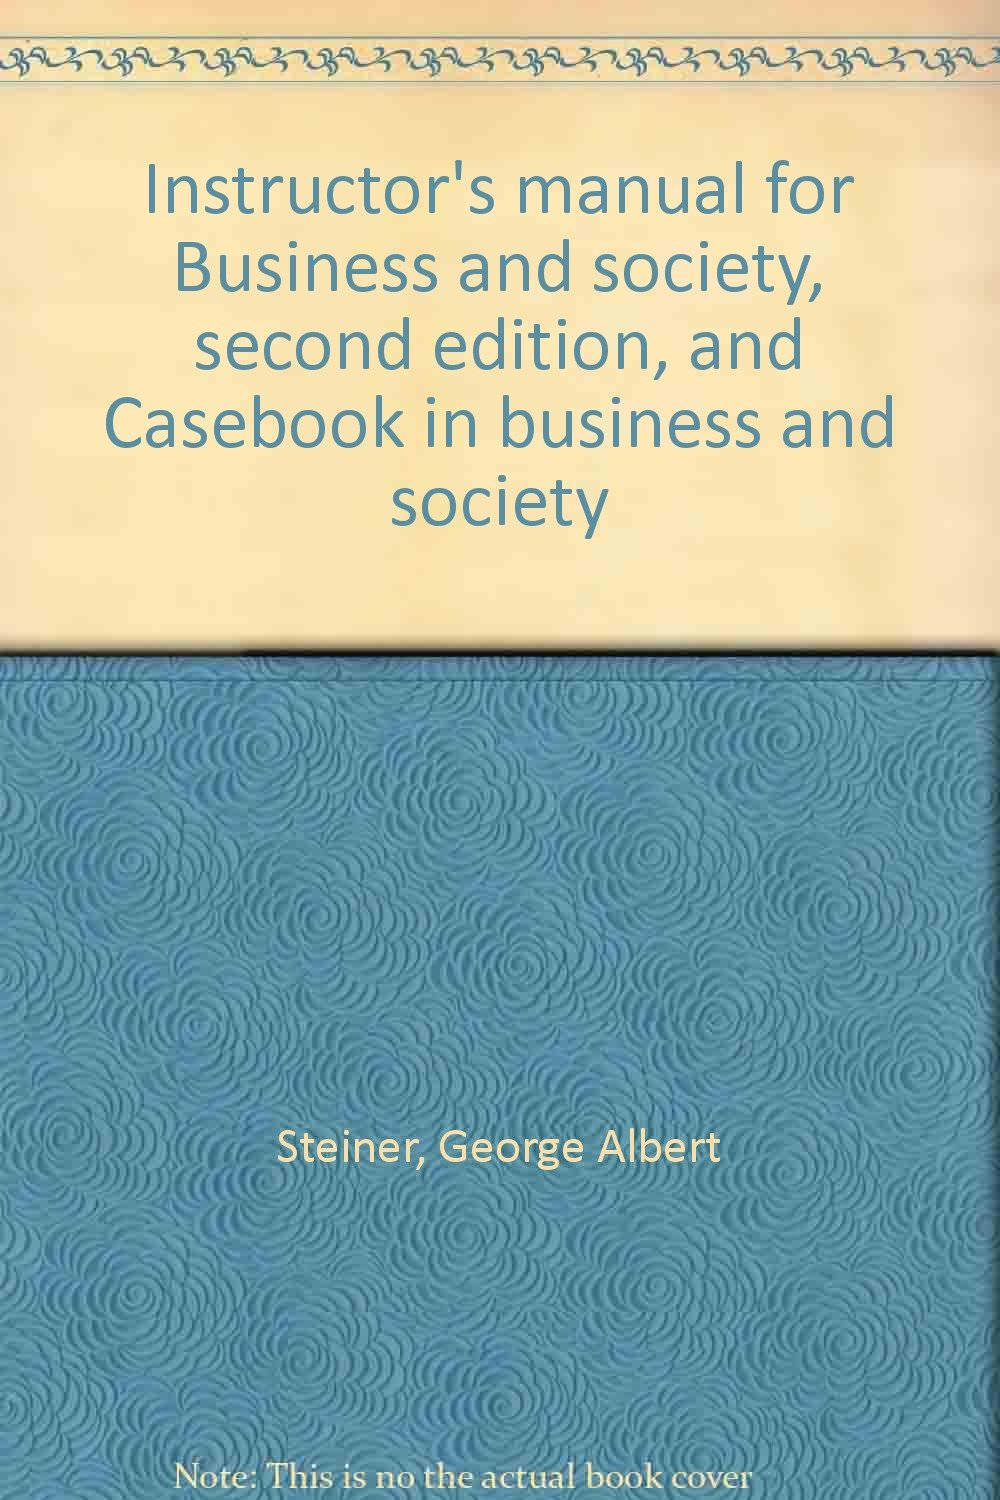 Instructor's manual for Business and society, second edition, and Casebook  in business and society: George Albert Steiner: 9780394319476: Amazon.com:  Books